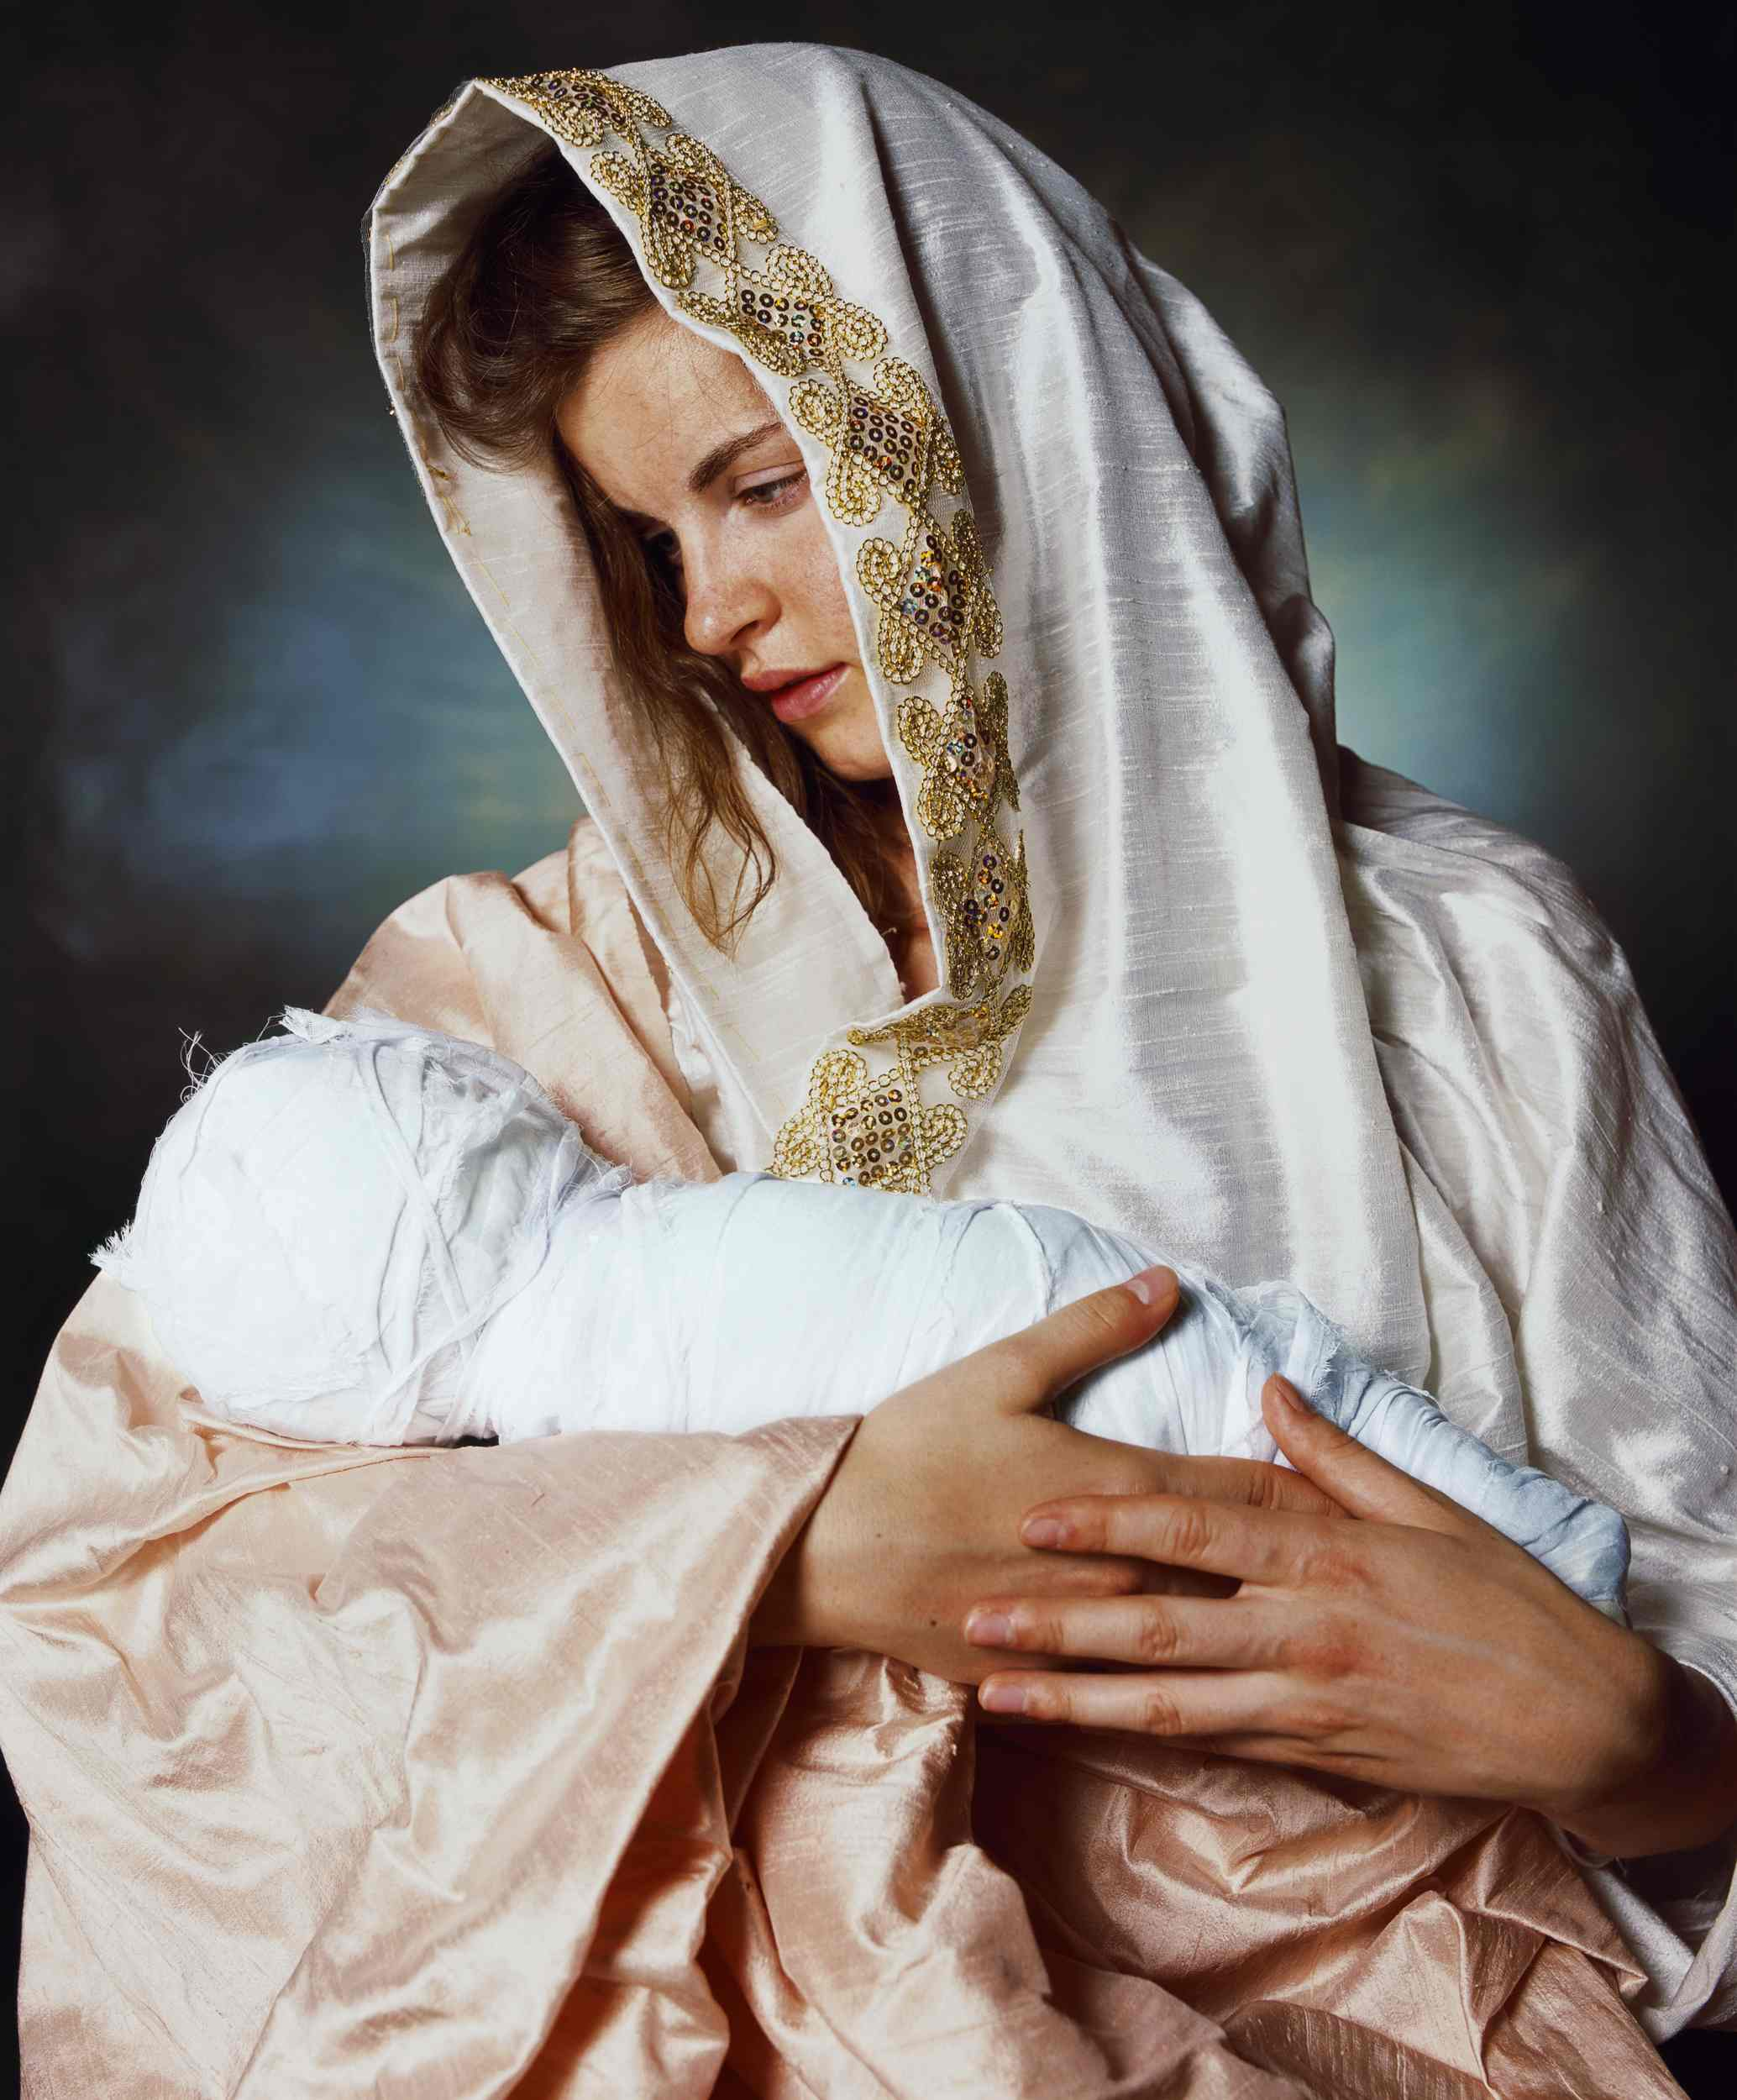 Andres Serrano - Mother and child - 2011 - courtesy Galleria Pack, Milano